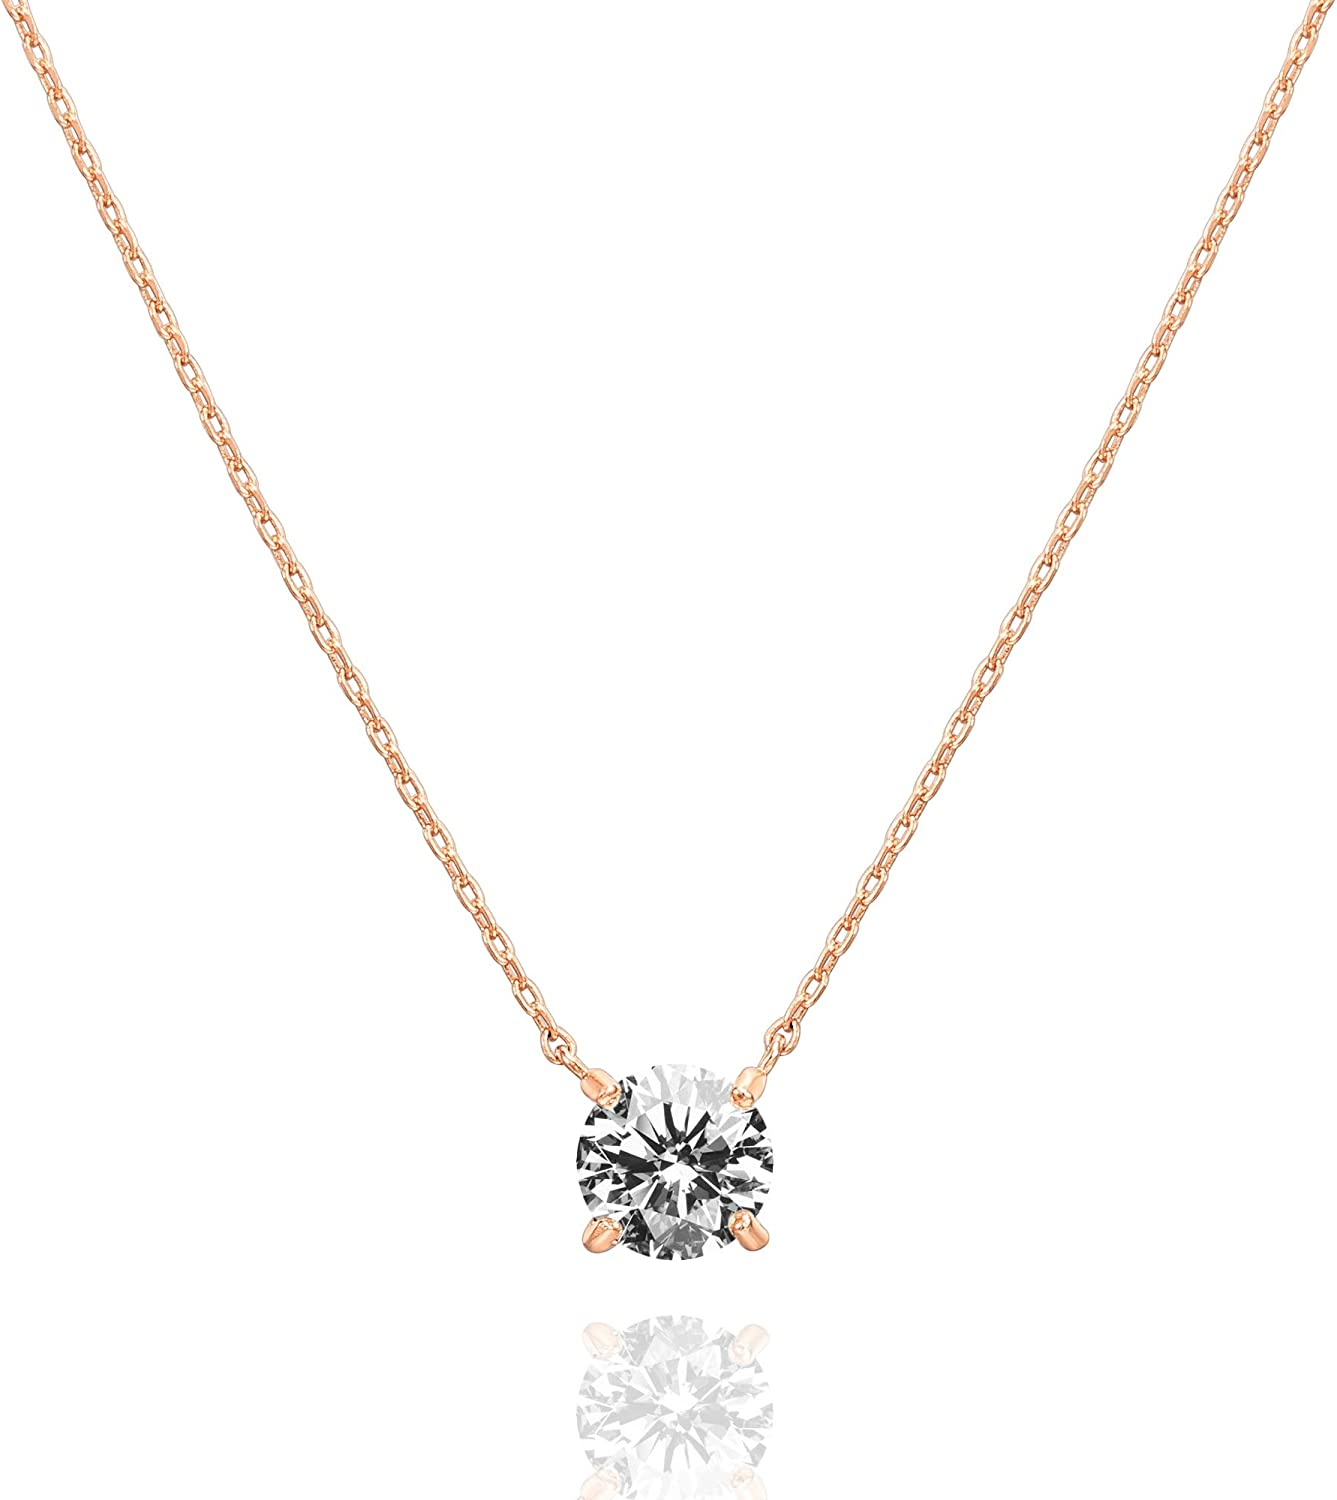 PAVOI Max 71% OFF 14K Gold Plated Swarovski Carat Crystal 7.3 1.5 Solitaire New Shipping Free Shipping